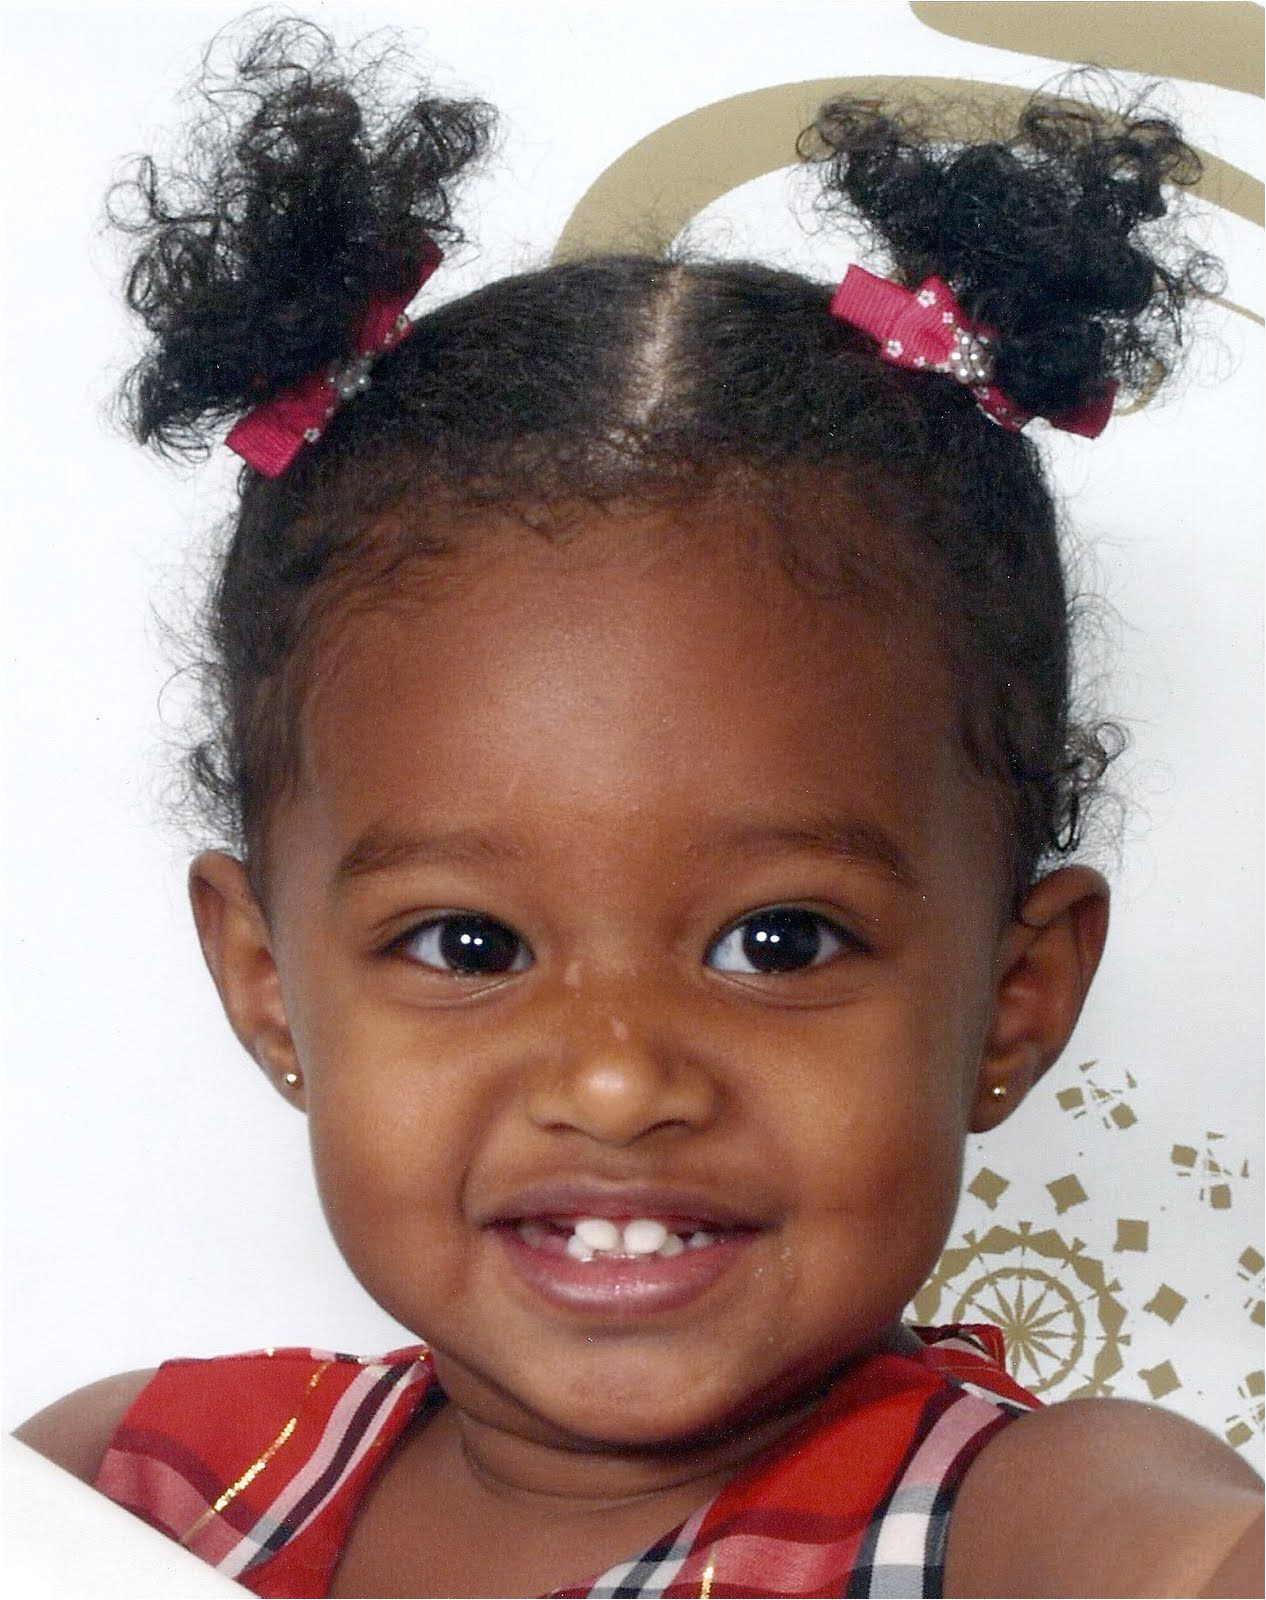 Hairstyles for 7 Year Old Black Girl 1 Year Old Black Baby Girl Hairstyles All American Parents Magazine